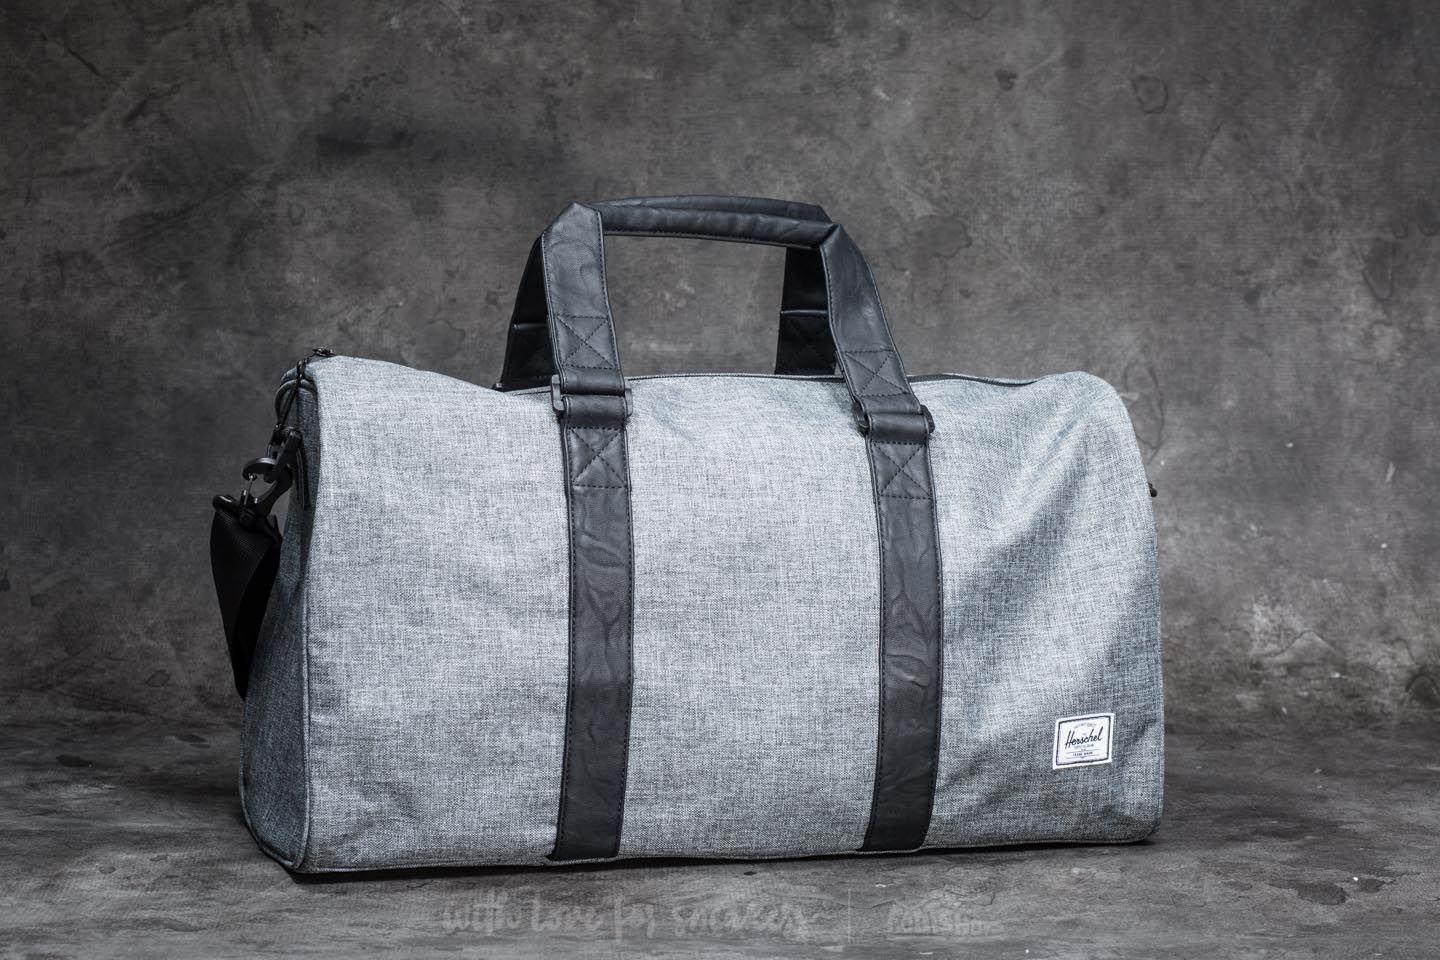 Lyst - Herschel Supply Co. Ravine Duffle Bag Raven Crosshatch  Black ... 3c76cd4283ed4